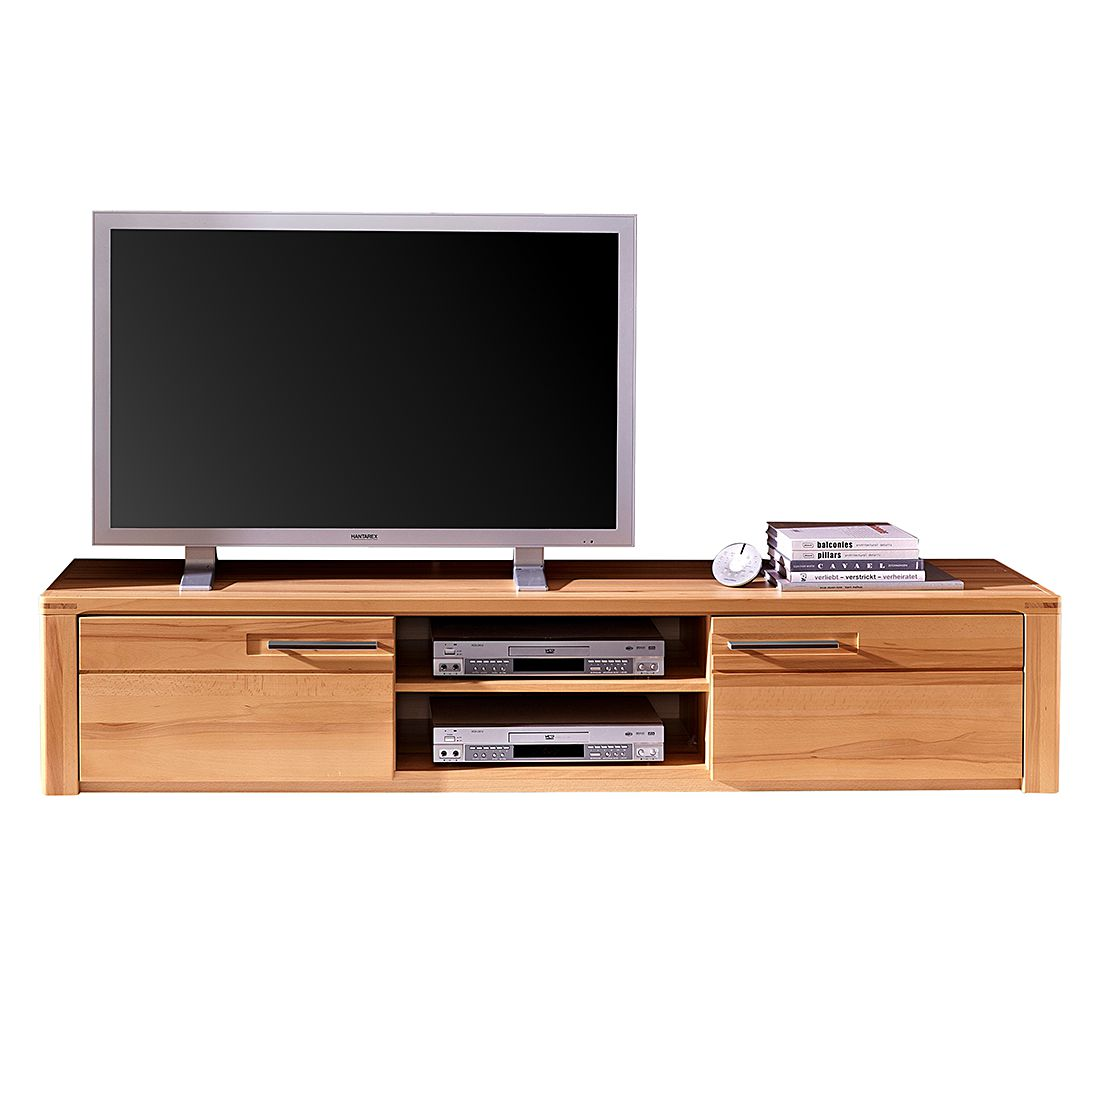 Meuble Tv Scandinave Gaby Sonoma Et Blanc Pin By Ladendirekt On Tv Hifi Möbel Cabinet Furniture